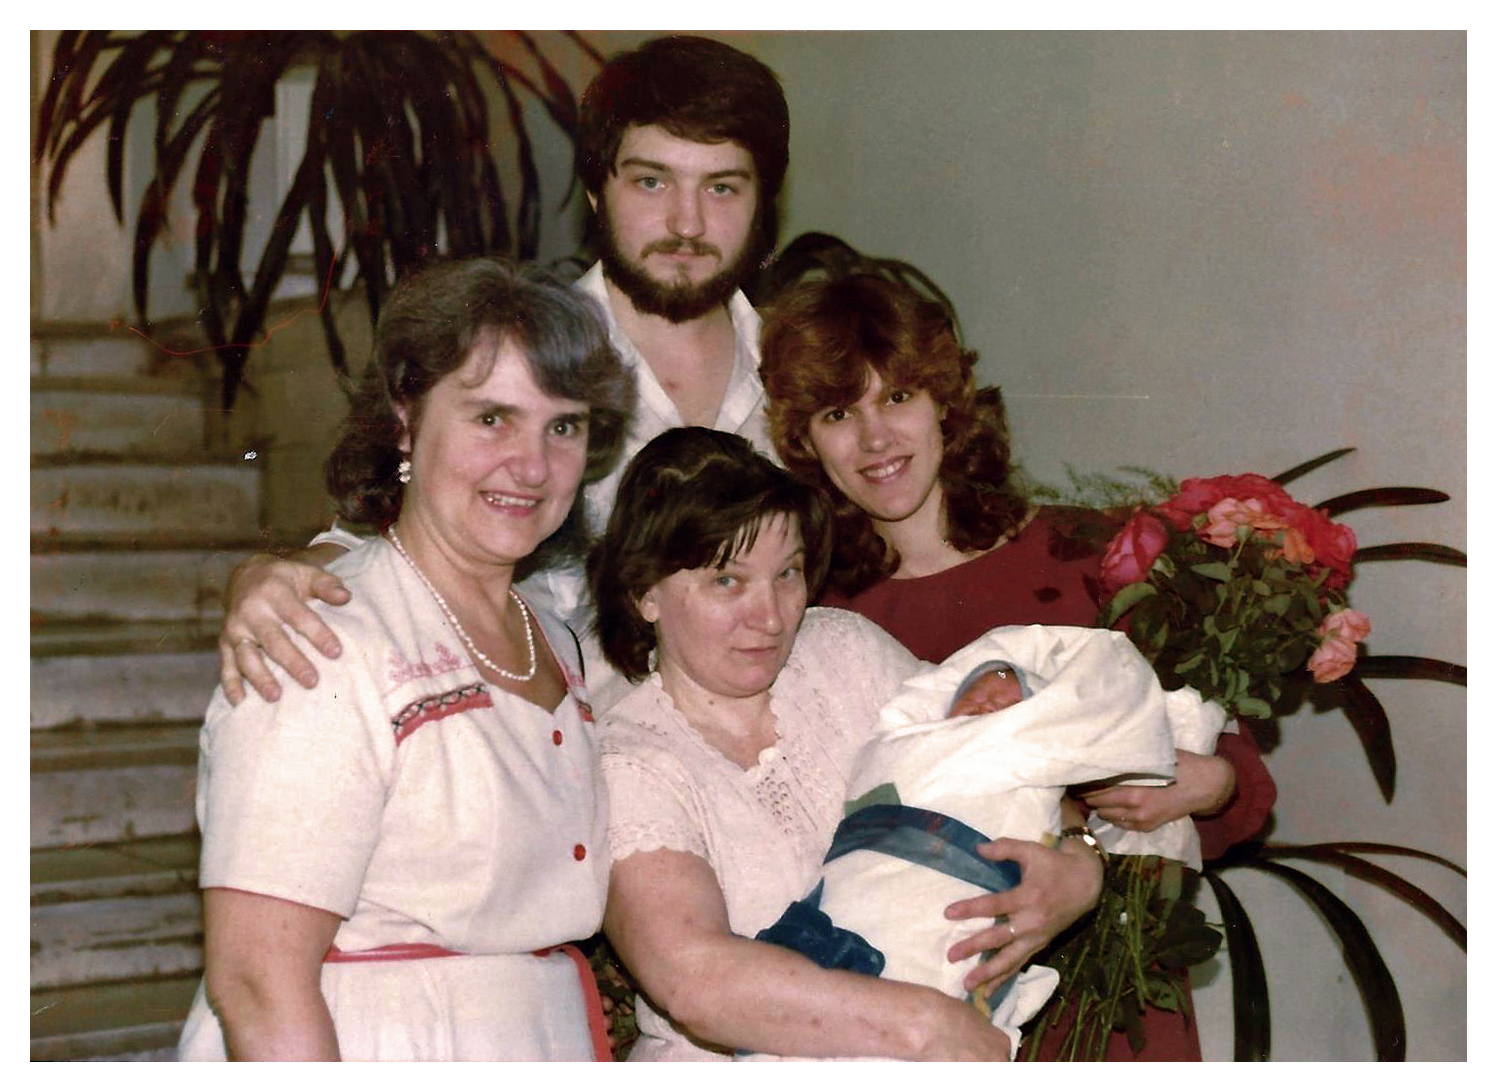 My Family with our newborn son on July 2, 1991